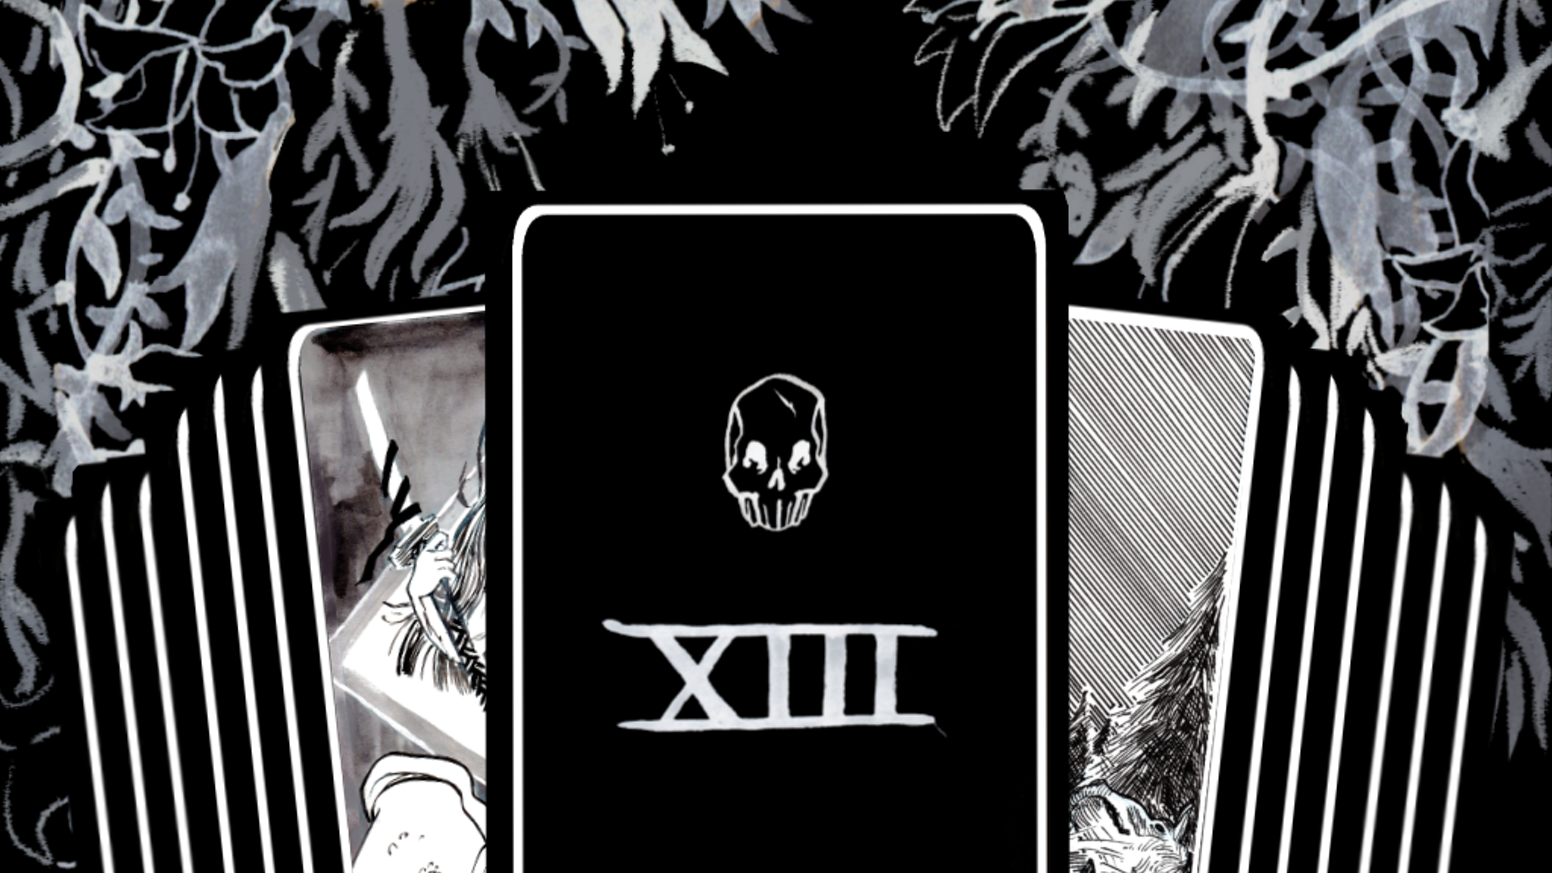 A deck of hand-painted tarot cards themed around psychopomps, grim angels, and the many deaths of myth and legend.